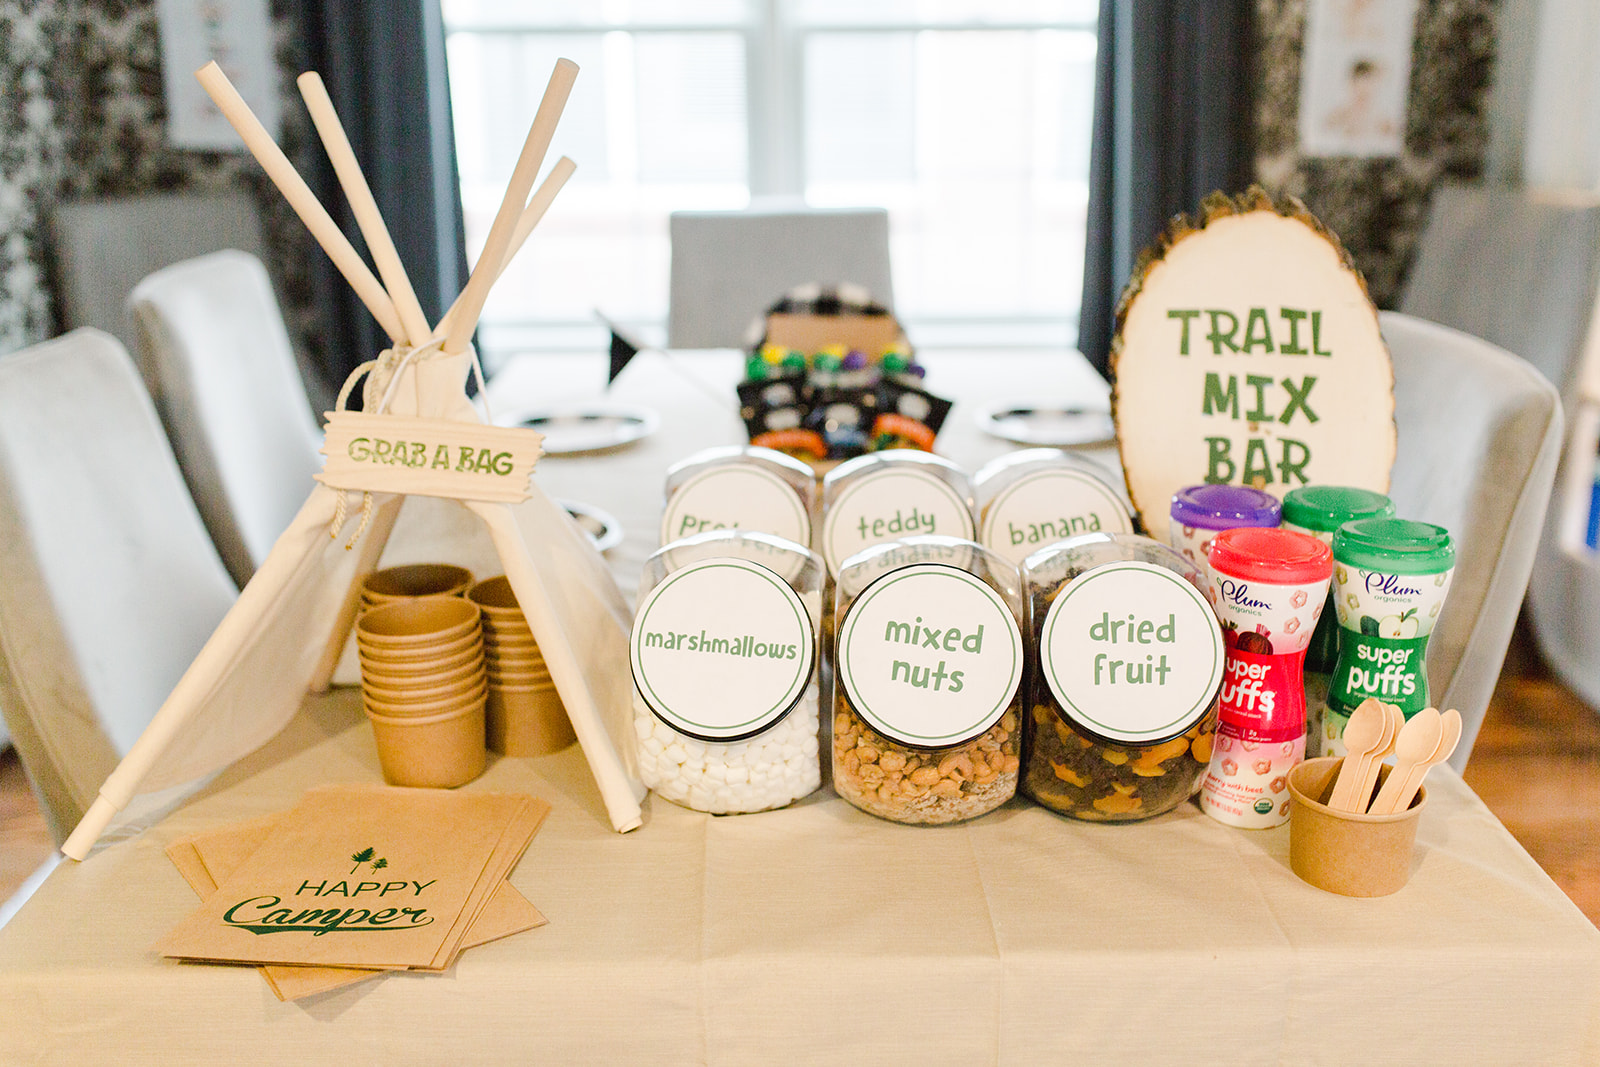 Camp Party Trail Mix Bar